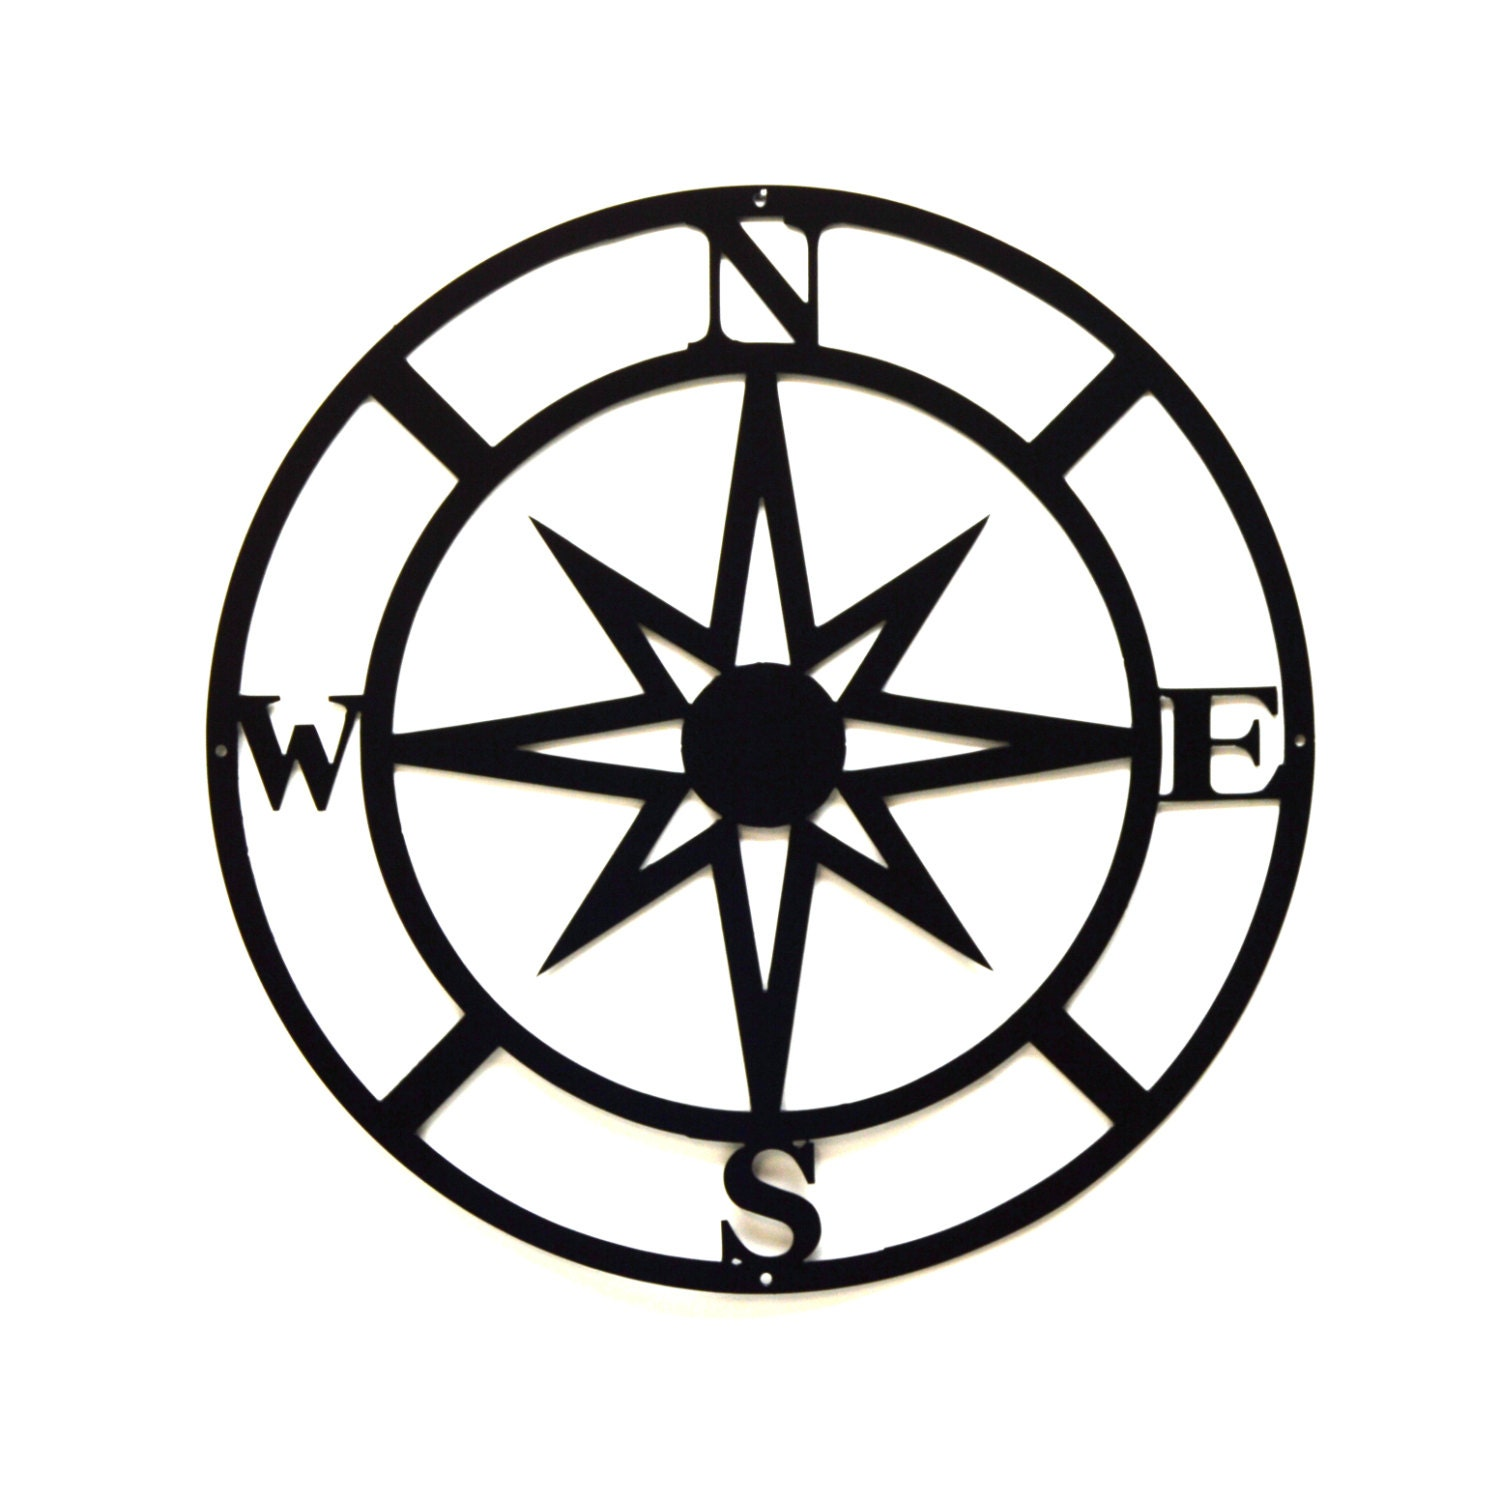 Compass Metal Wall Art Free USA Shipping